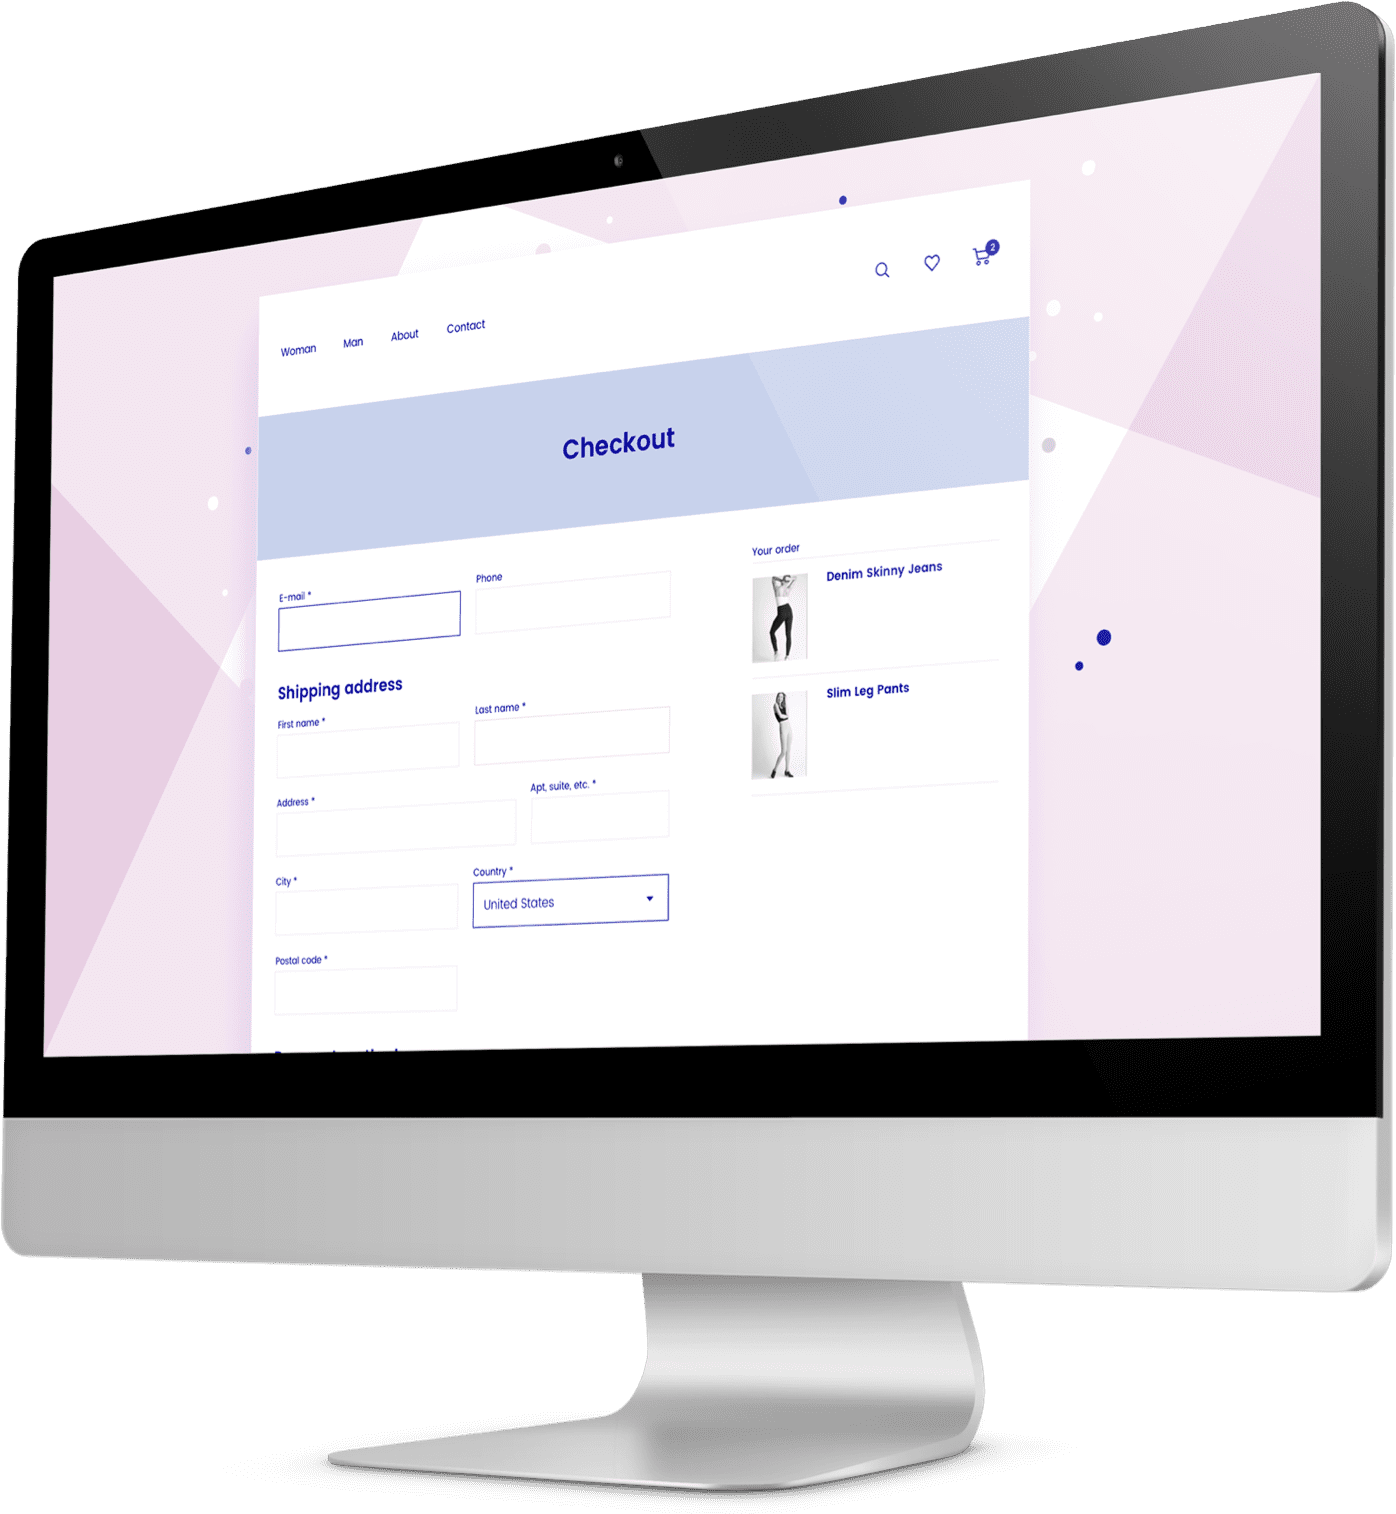 Checkout forms on apparel company's website shown on a monitor